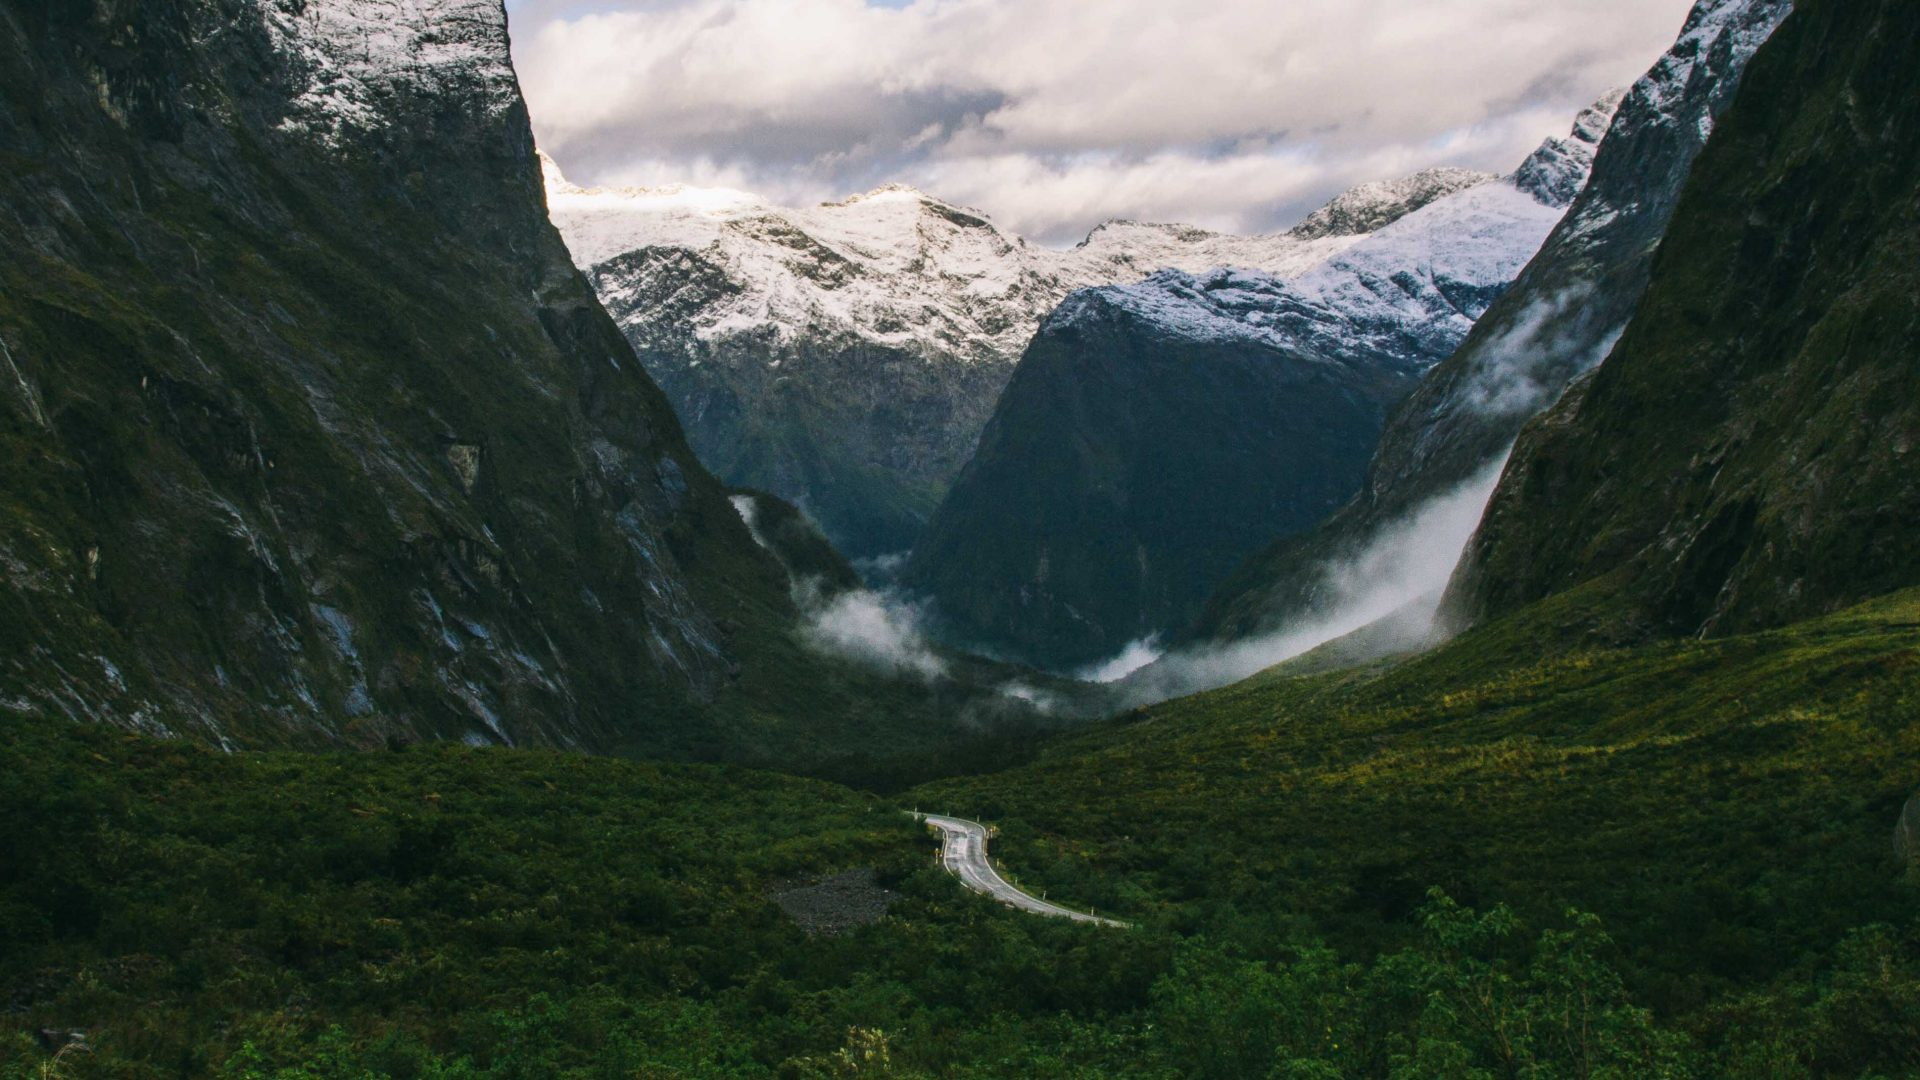 The winding road leading to Homer Tunnel in Fiordland National Park, New Zealand.